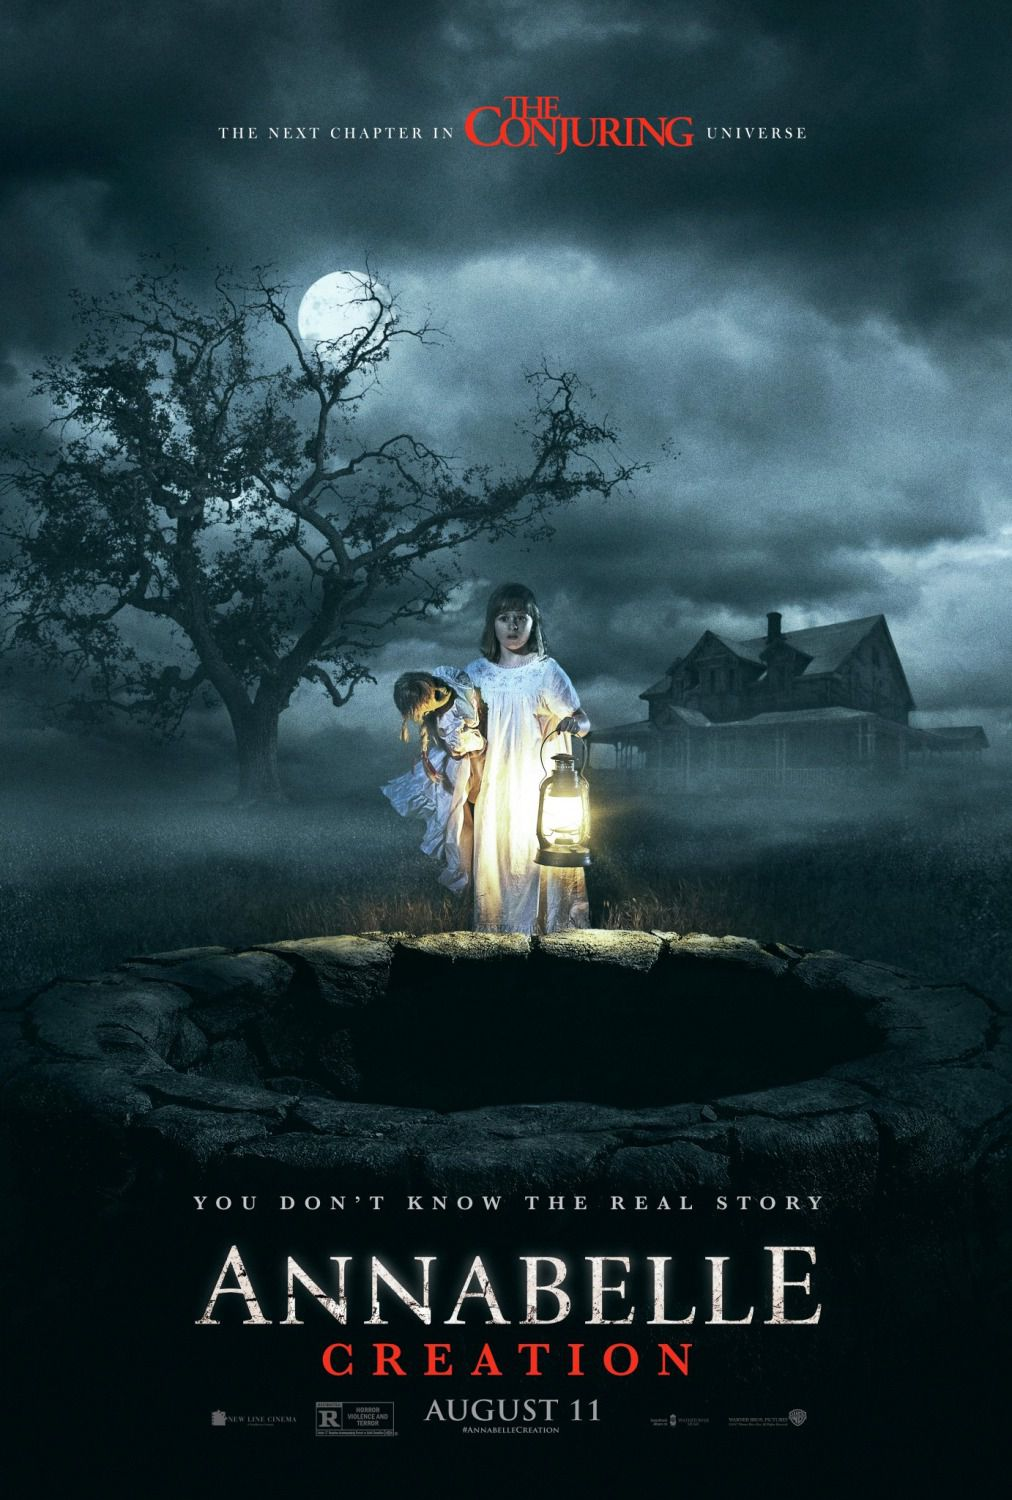 Annabelle 2 - Creation - horror poster - the next chapter in the Conjuring universe